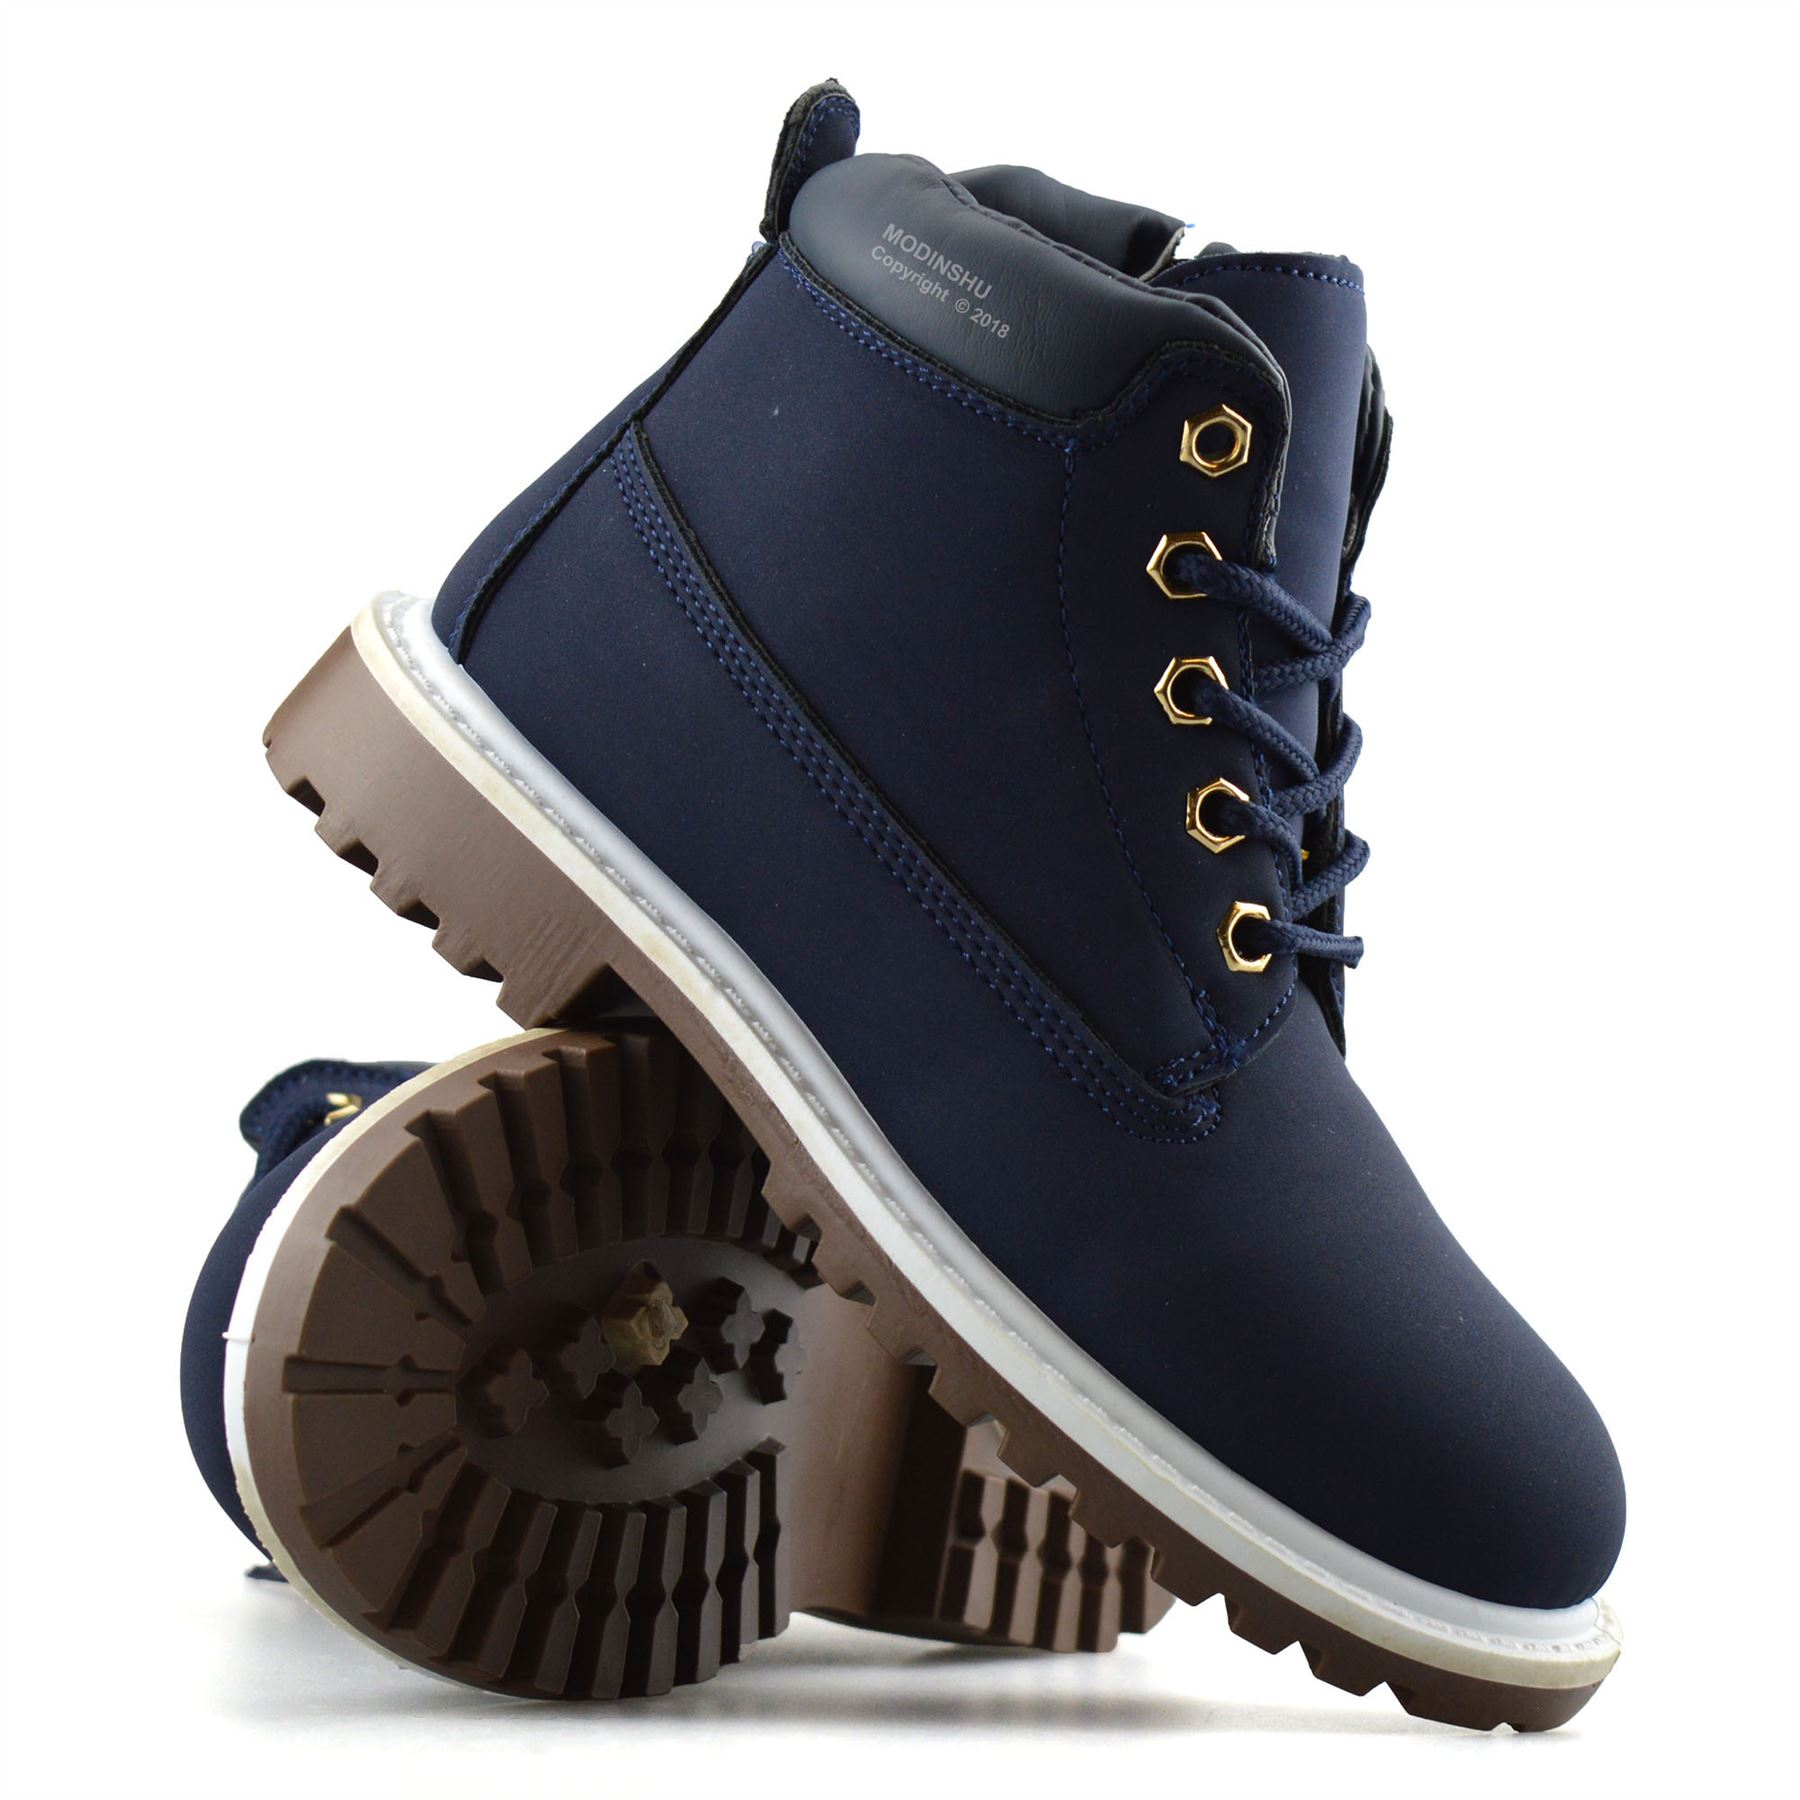 Boys-Kids-New-Casual-Zip-Lace-Up-Winter-Walking-Ankle-Boots-Trainers-Shoes-Size thumbnail 17